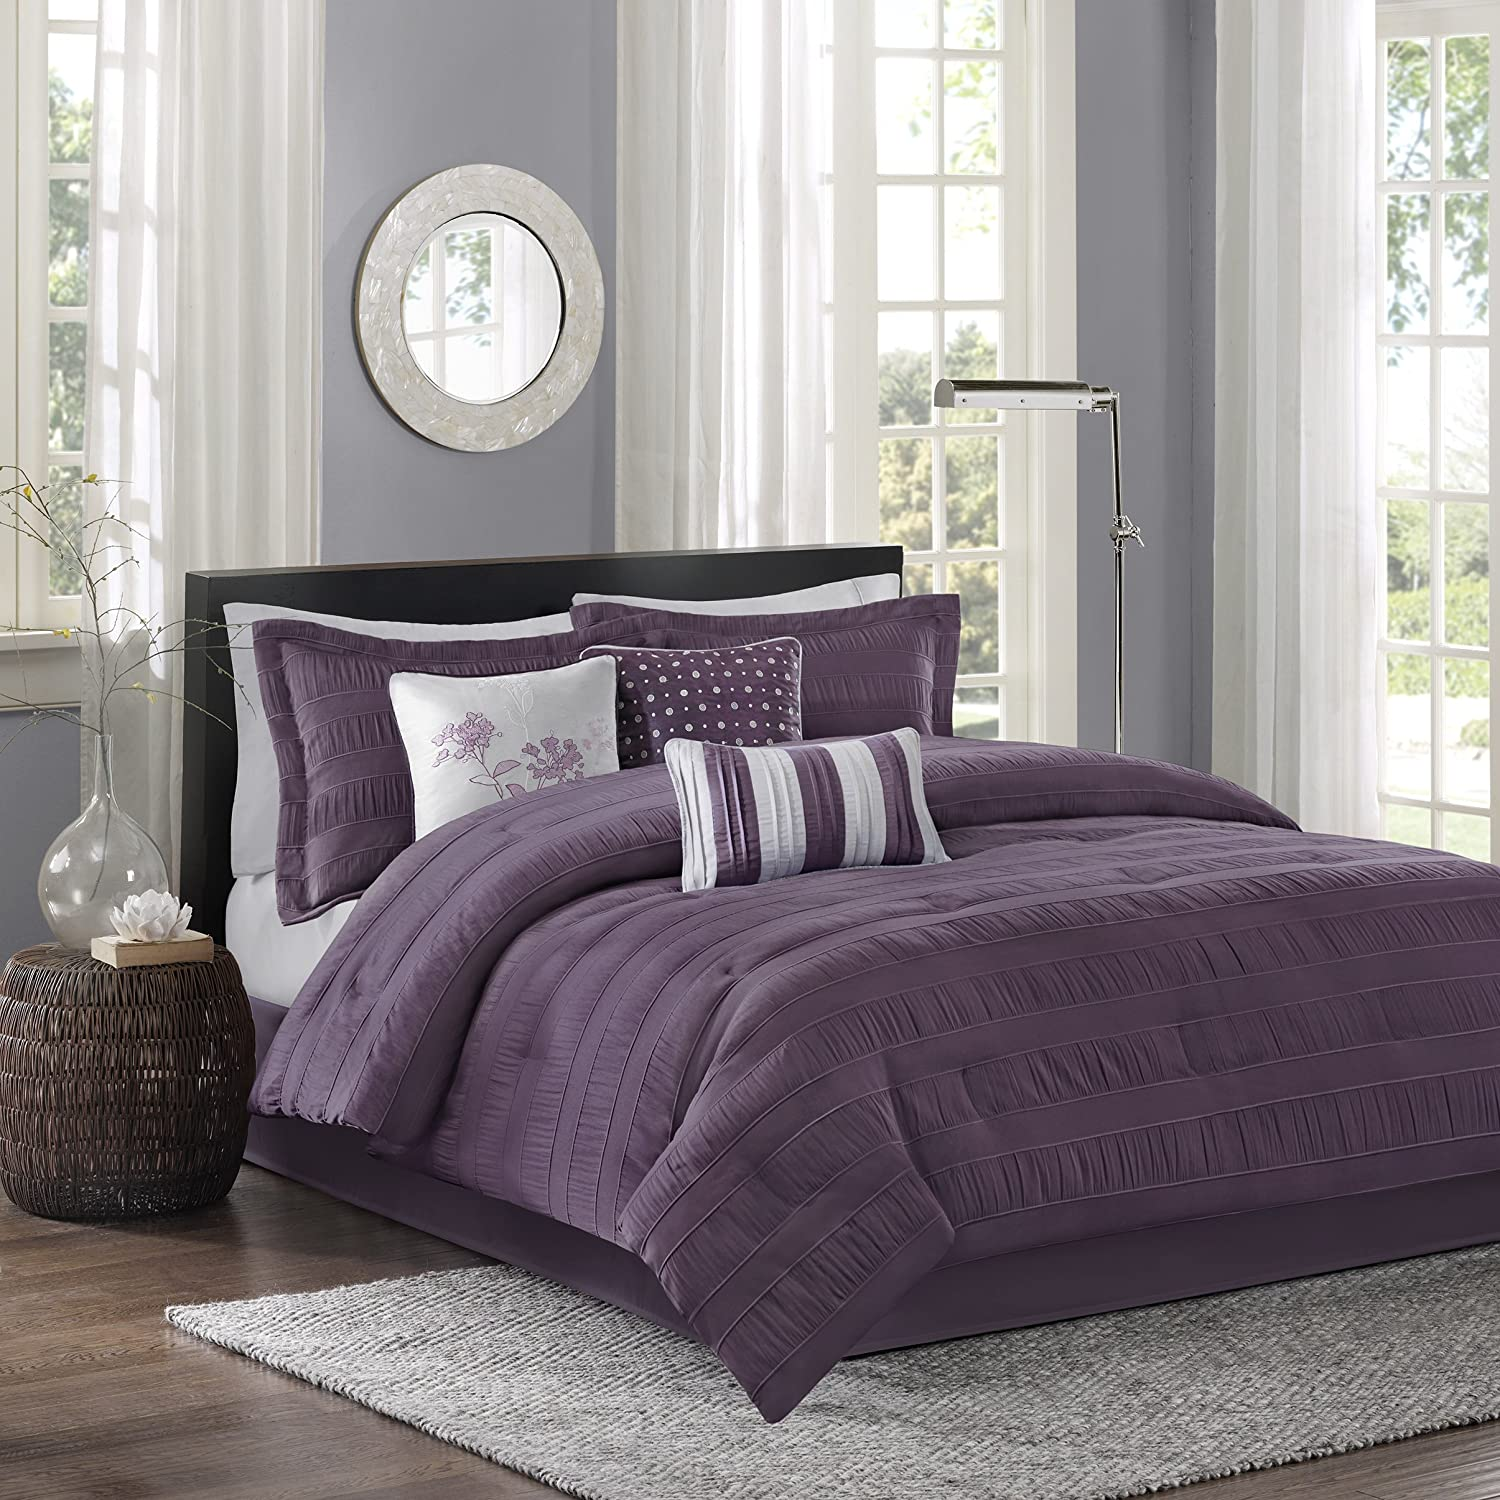 Madison Park Hampton 7 Piece Comforter Set, King, Plum